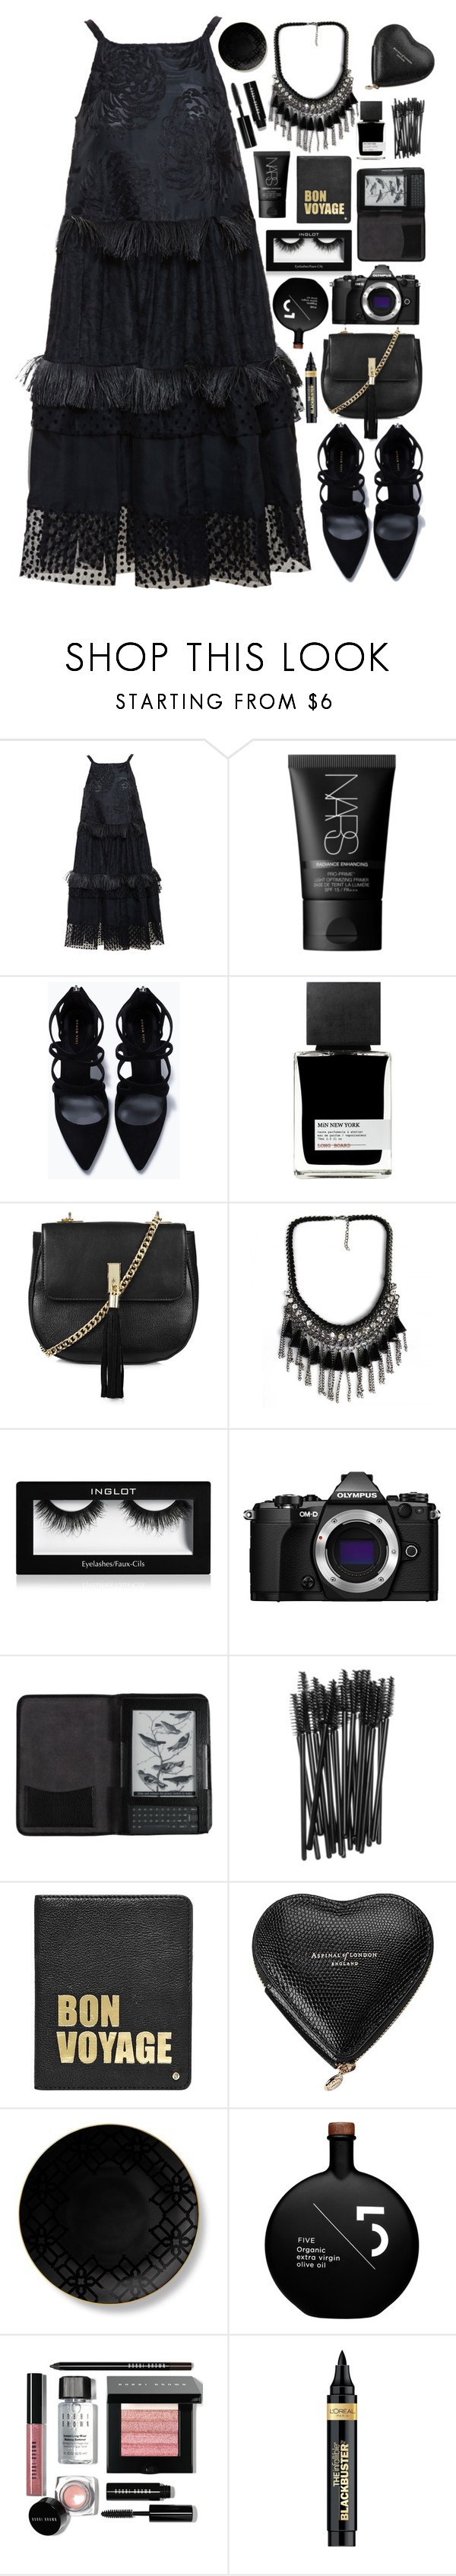 """Bon Voyage"" by mplusk ❤ liked on Polyvore featuring Rochas, NARS Cosmetics, Zara, MiN New York, Topshop, Olympus, Cole Haan, MAC Cosmetics, Hayden-Harnett and Aspinal of London"